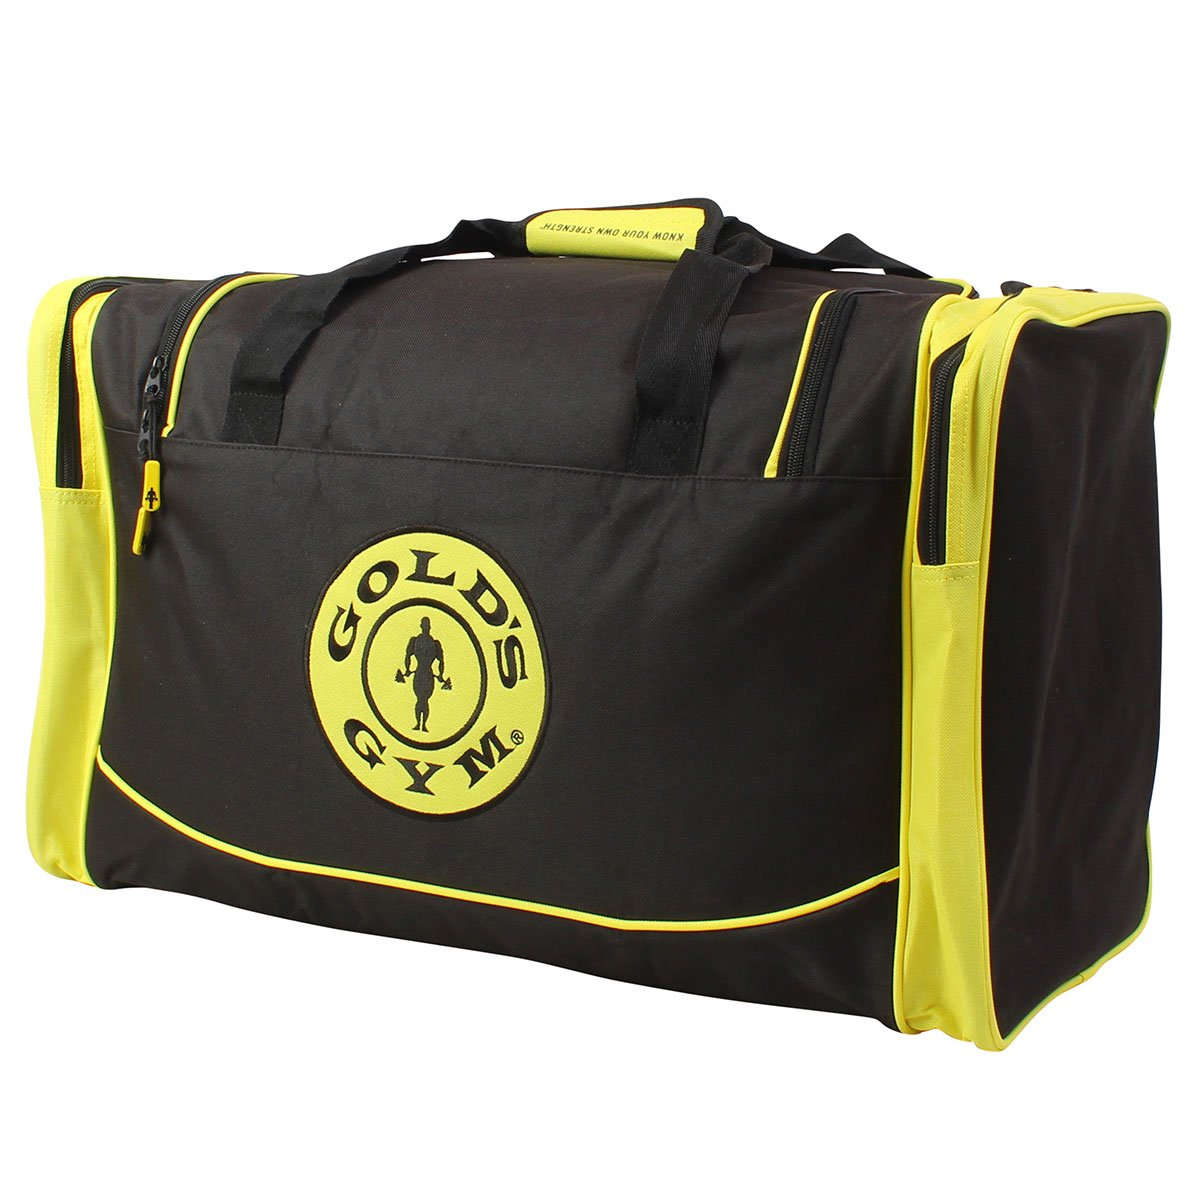 747a0ac2ad3d Gold s Gym 2017 Large Sports Duffel Bag Mens Gym Bag  Travel Holdall Black  Gold  Amazon.co.uk  Sports   Outdoors